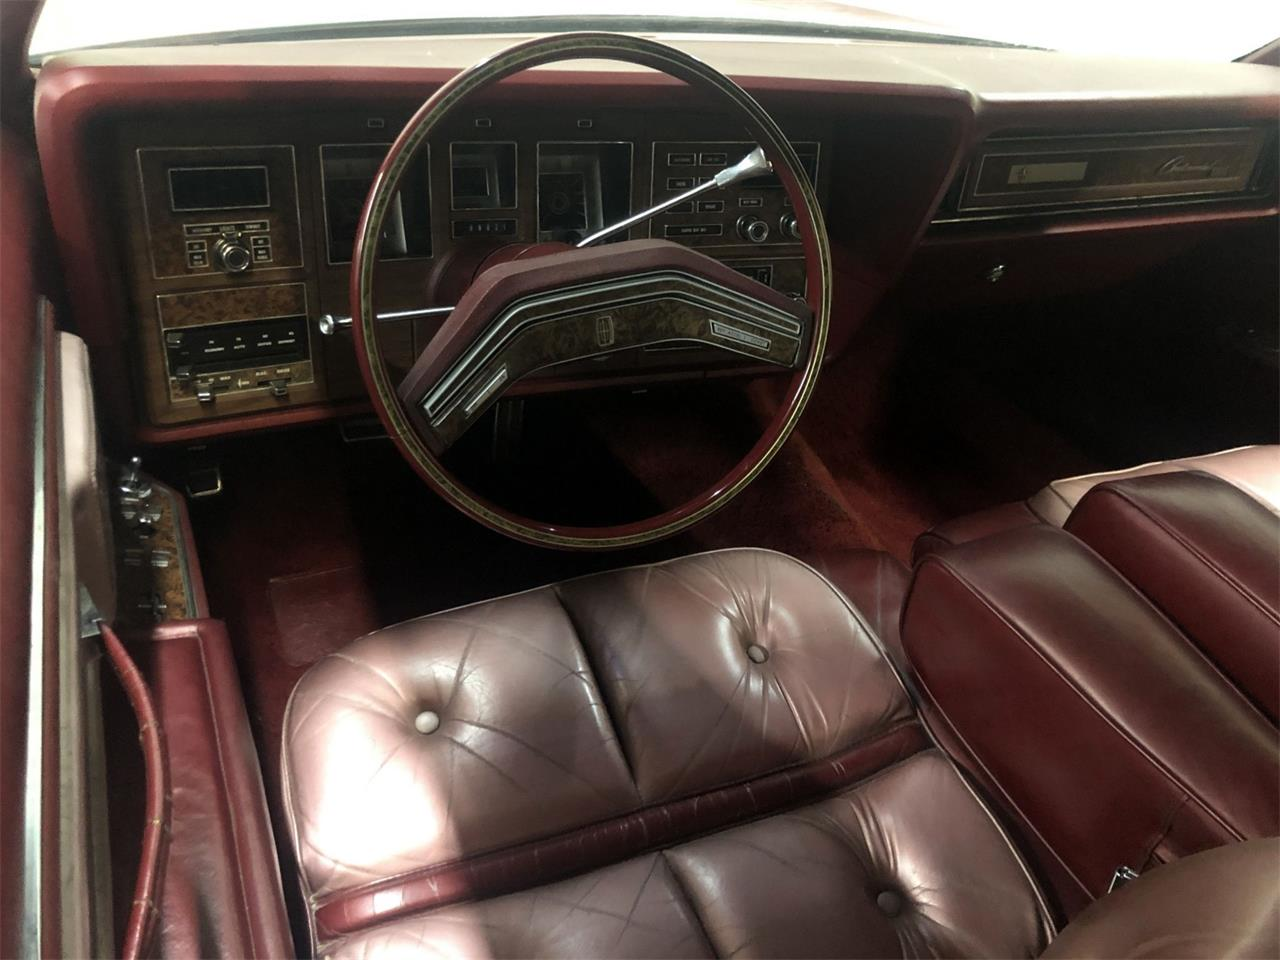 1976 Lincoln Continental Mark IV (CC-1294300) for sale in Maple Lake, Minnesota